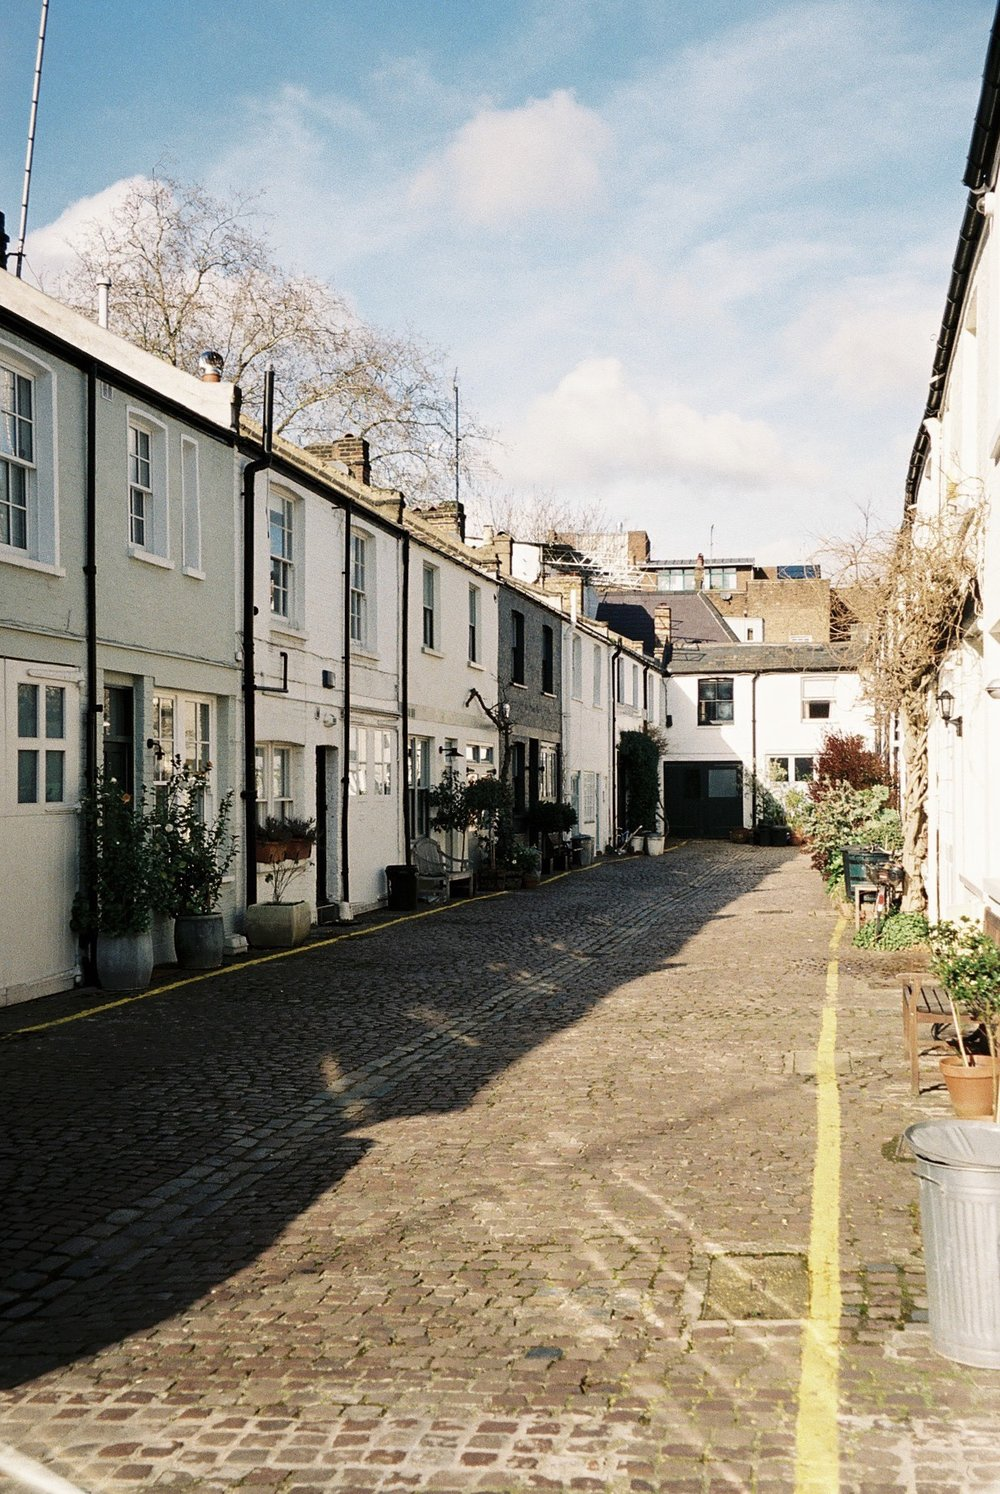 Notting Hill on a sunny day. / Notting Hill num dia solarengo.